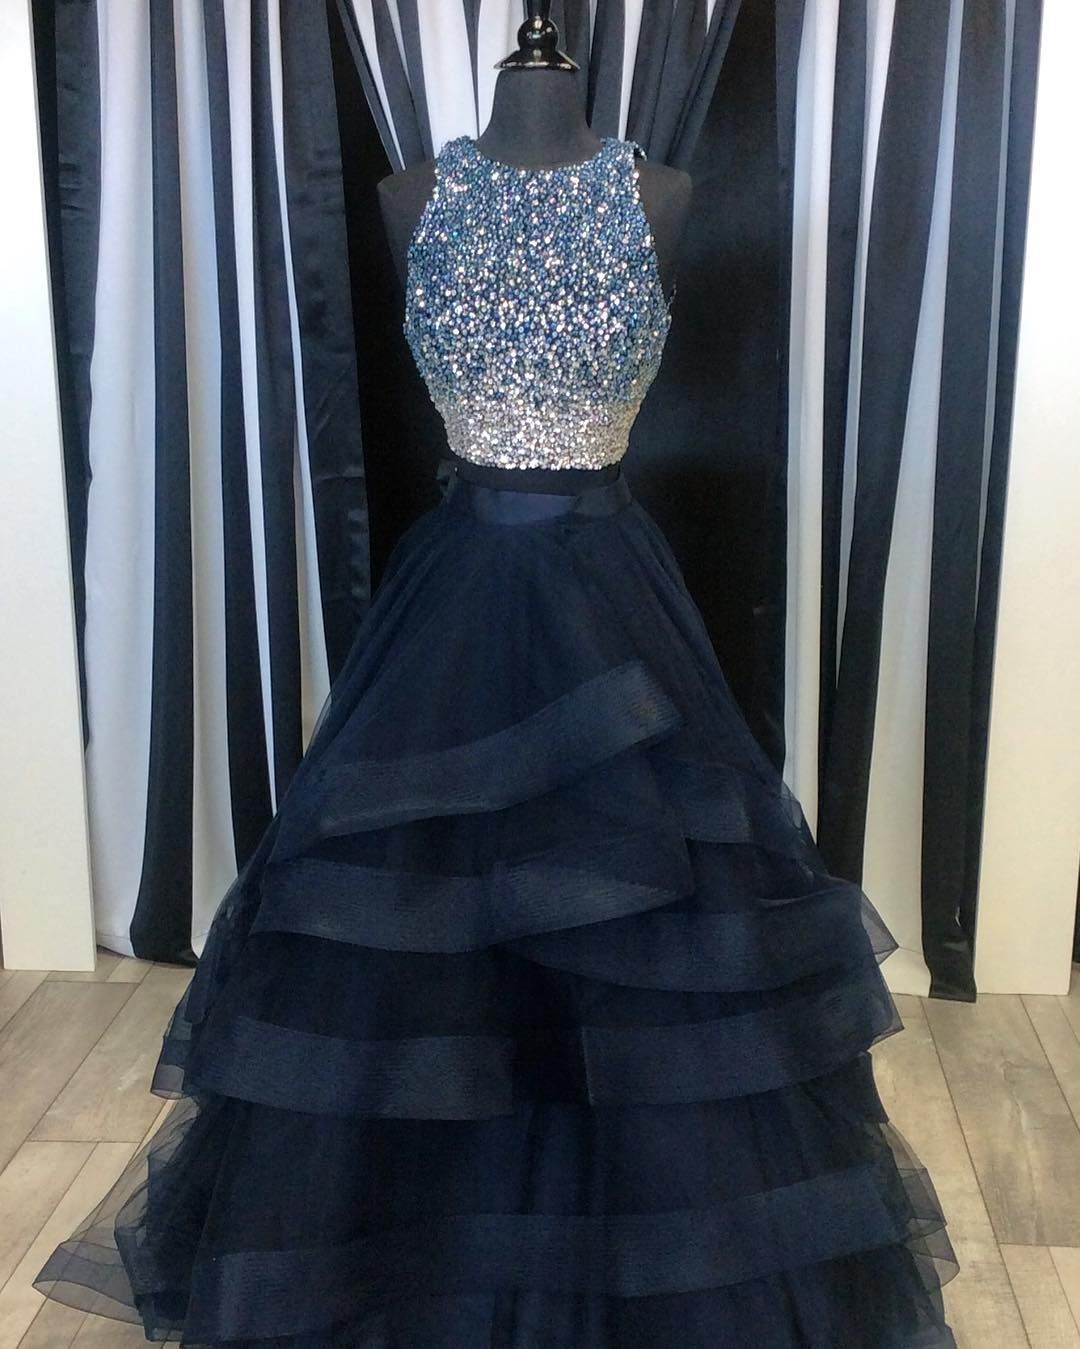 O-neck Party Dresses Ball-gown Evening Dresses Floor Length Prom Dresses Sleeveless Homecoming Dresses